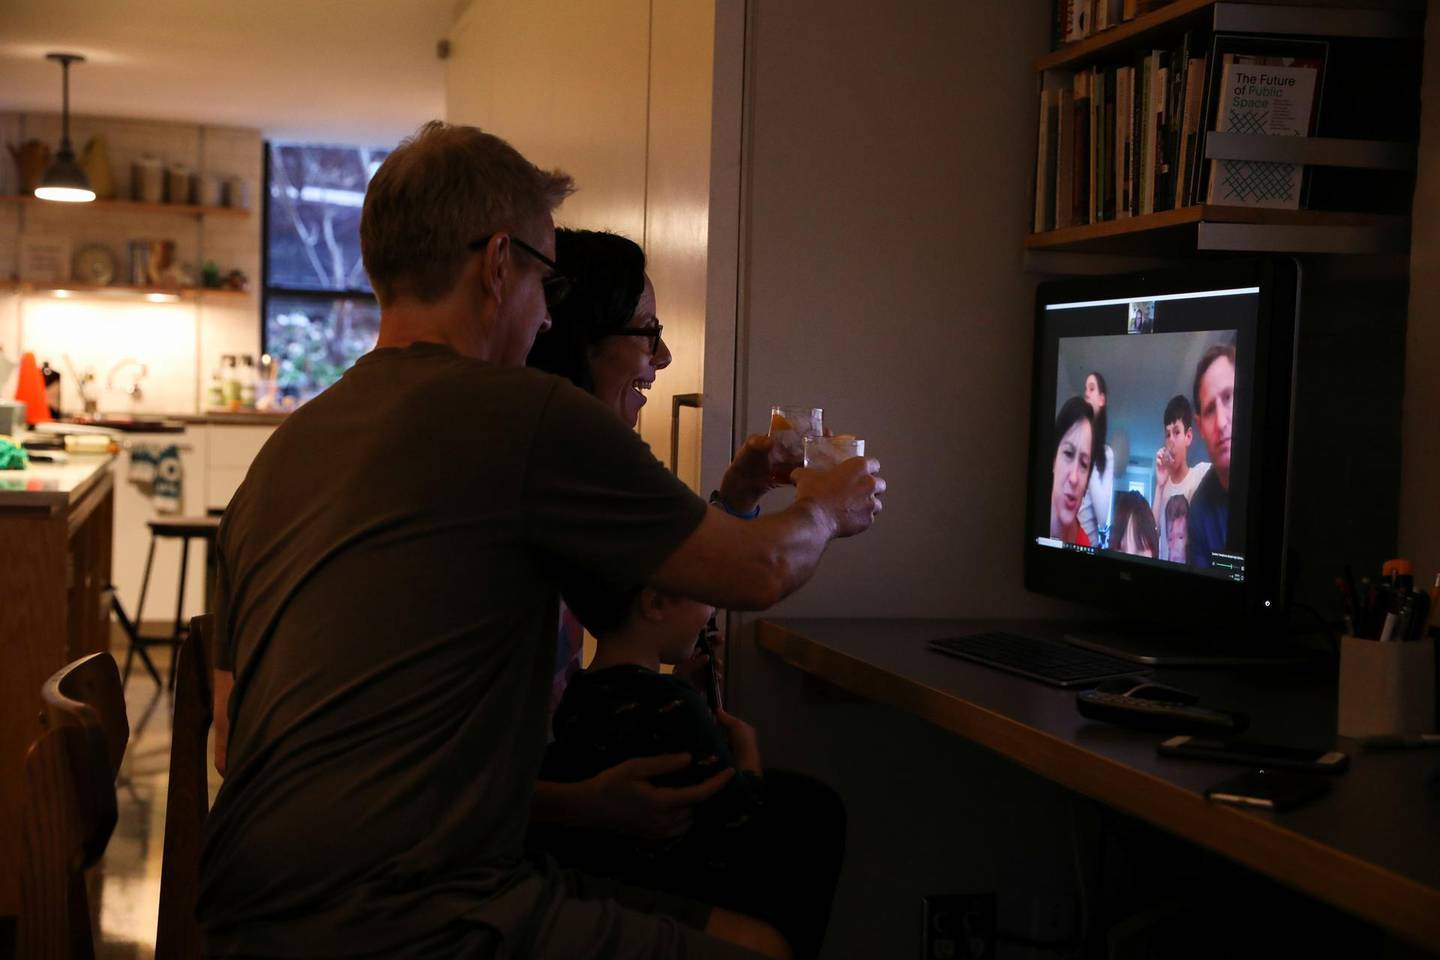 Naomi and her husband Doug Hassebroek enjoy a happy hour and cheers friends and family from their home using Zoom to connect digitally at the end of their first Friday working from home due to concerns over the rapid spread of coronavirus disease (COVID-19) in Brooklyn, New York, U.S., March 20, 2020. REUTERS/Caitlin Ochs